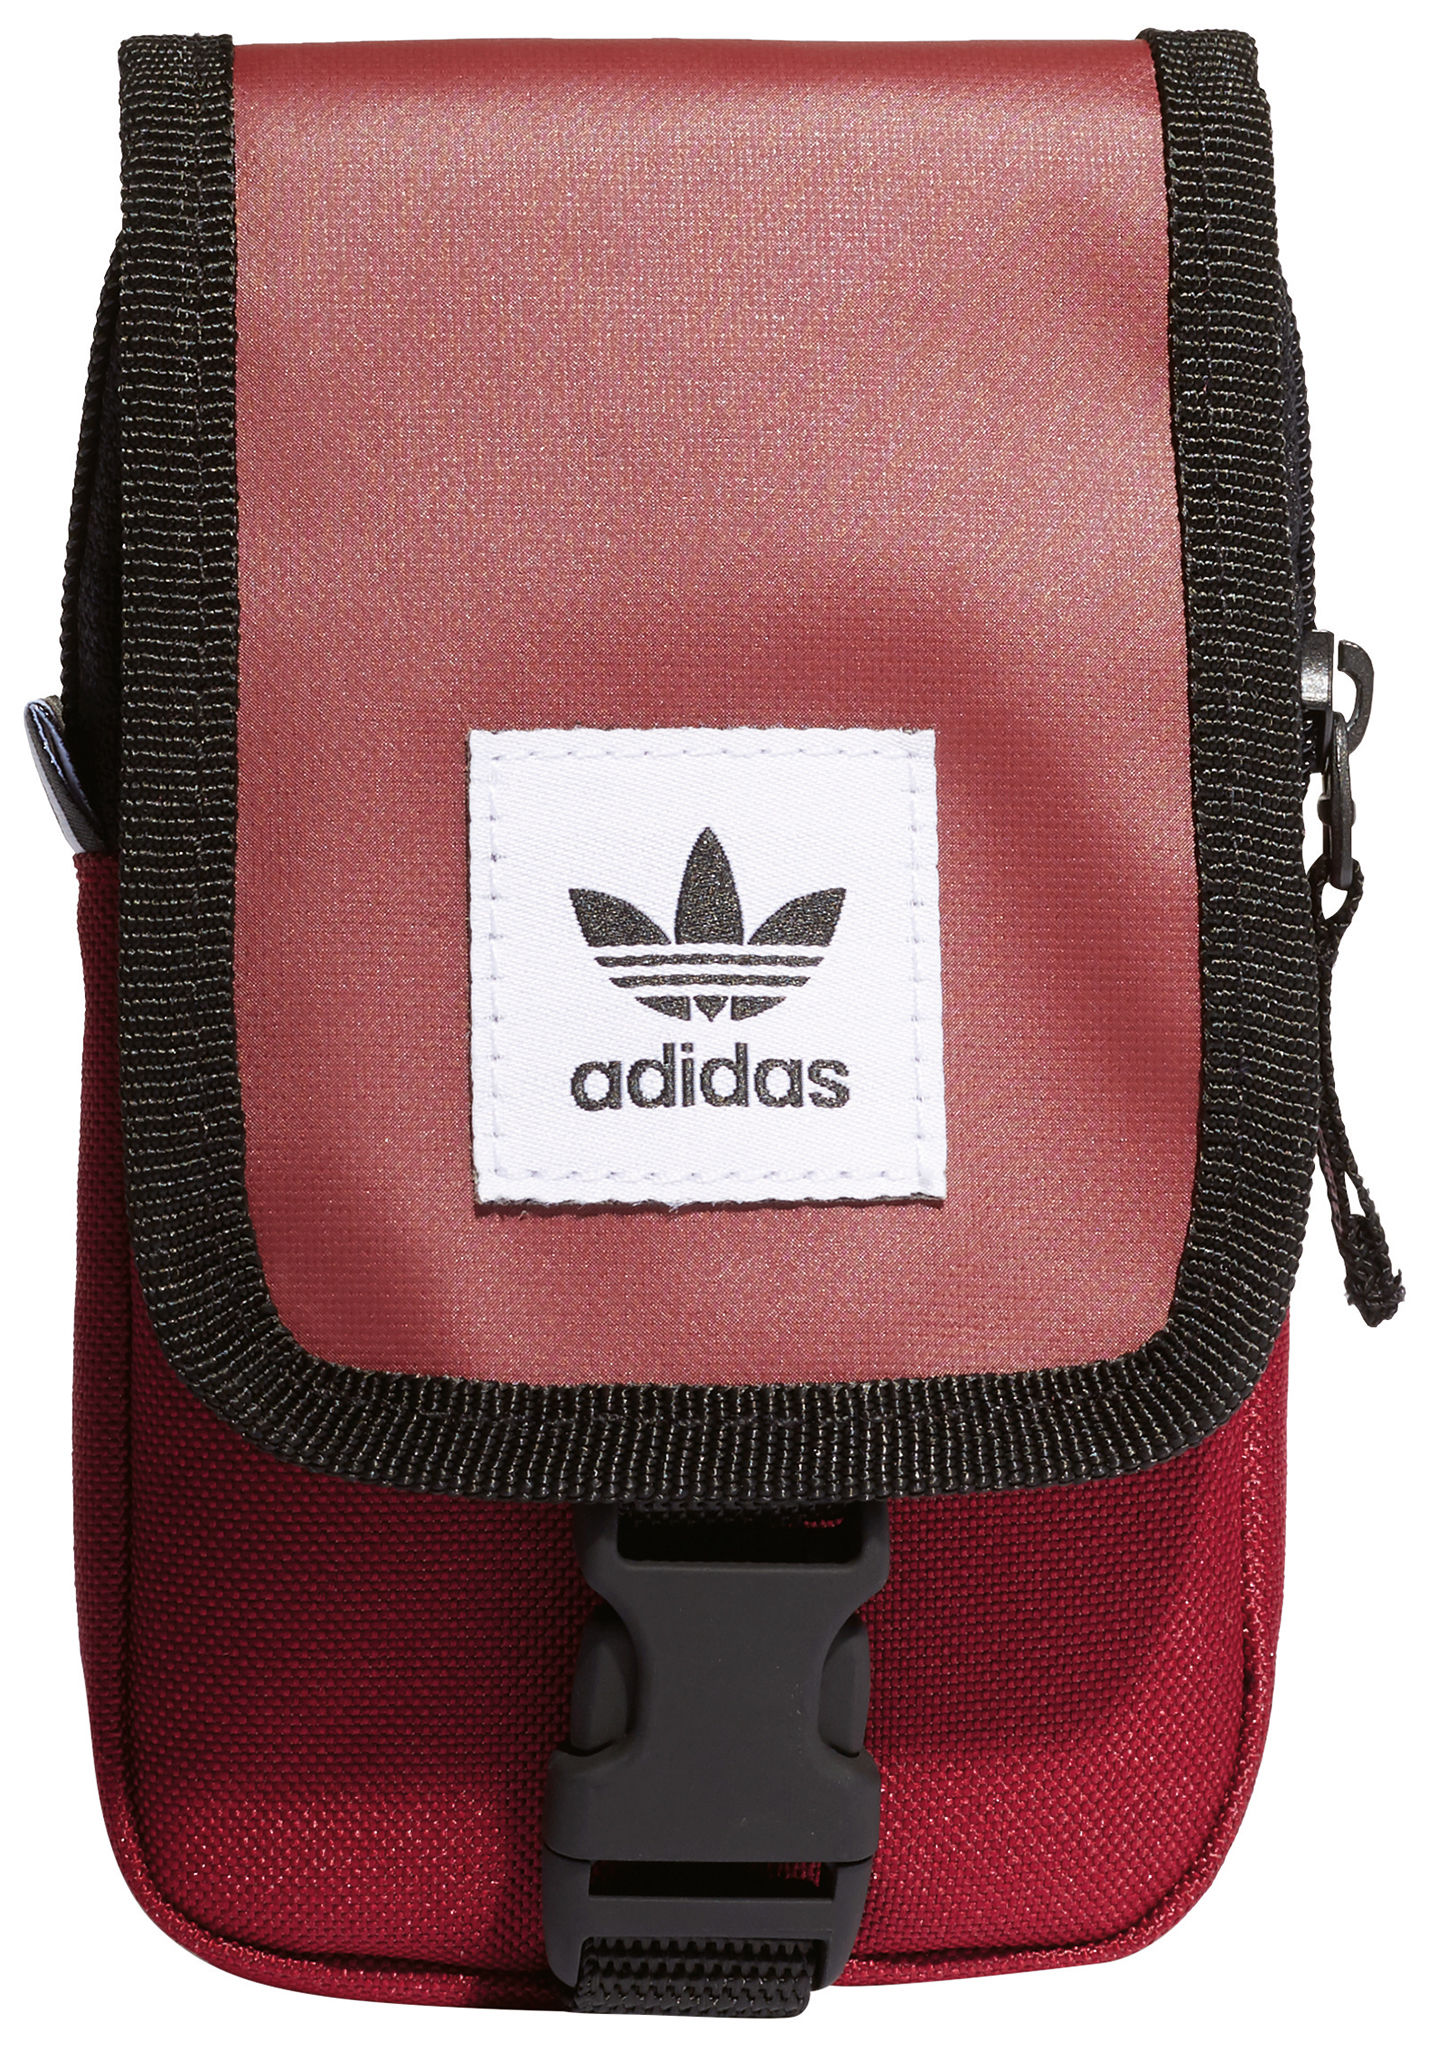 23fa6b849cf1 adidas bags - Shop for and Buy adidas bags Online - Macy's